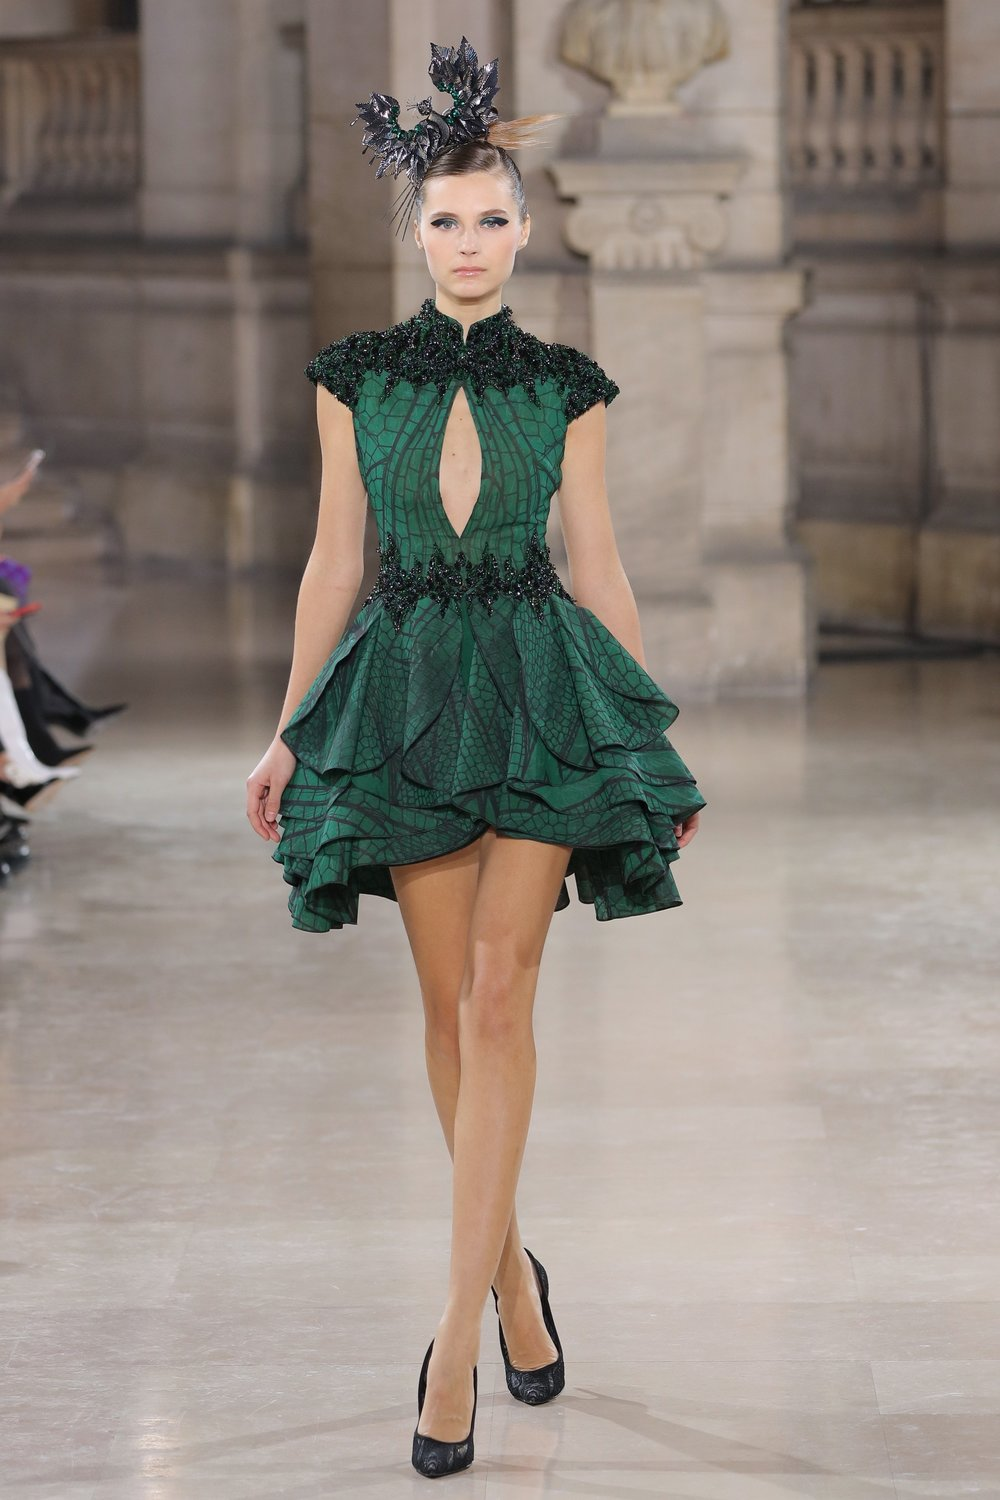 TONY_WARD_COUTURE_SS19_29.jpg